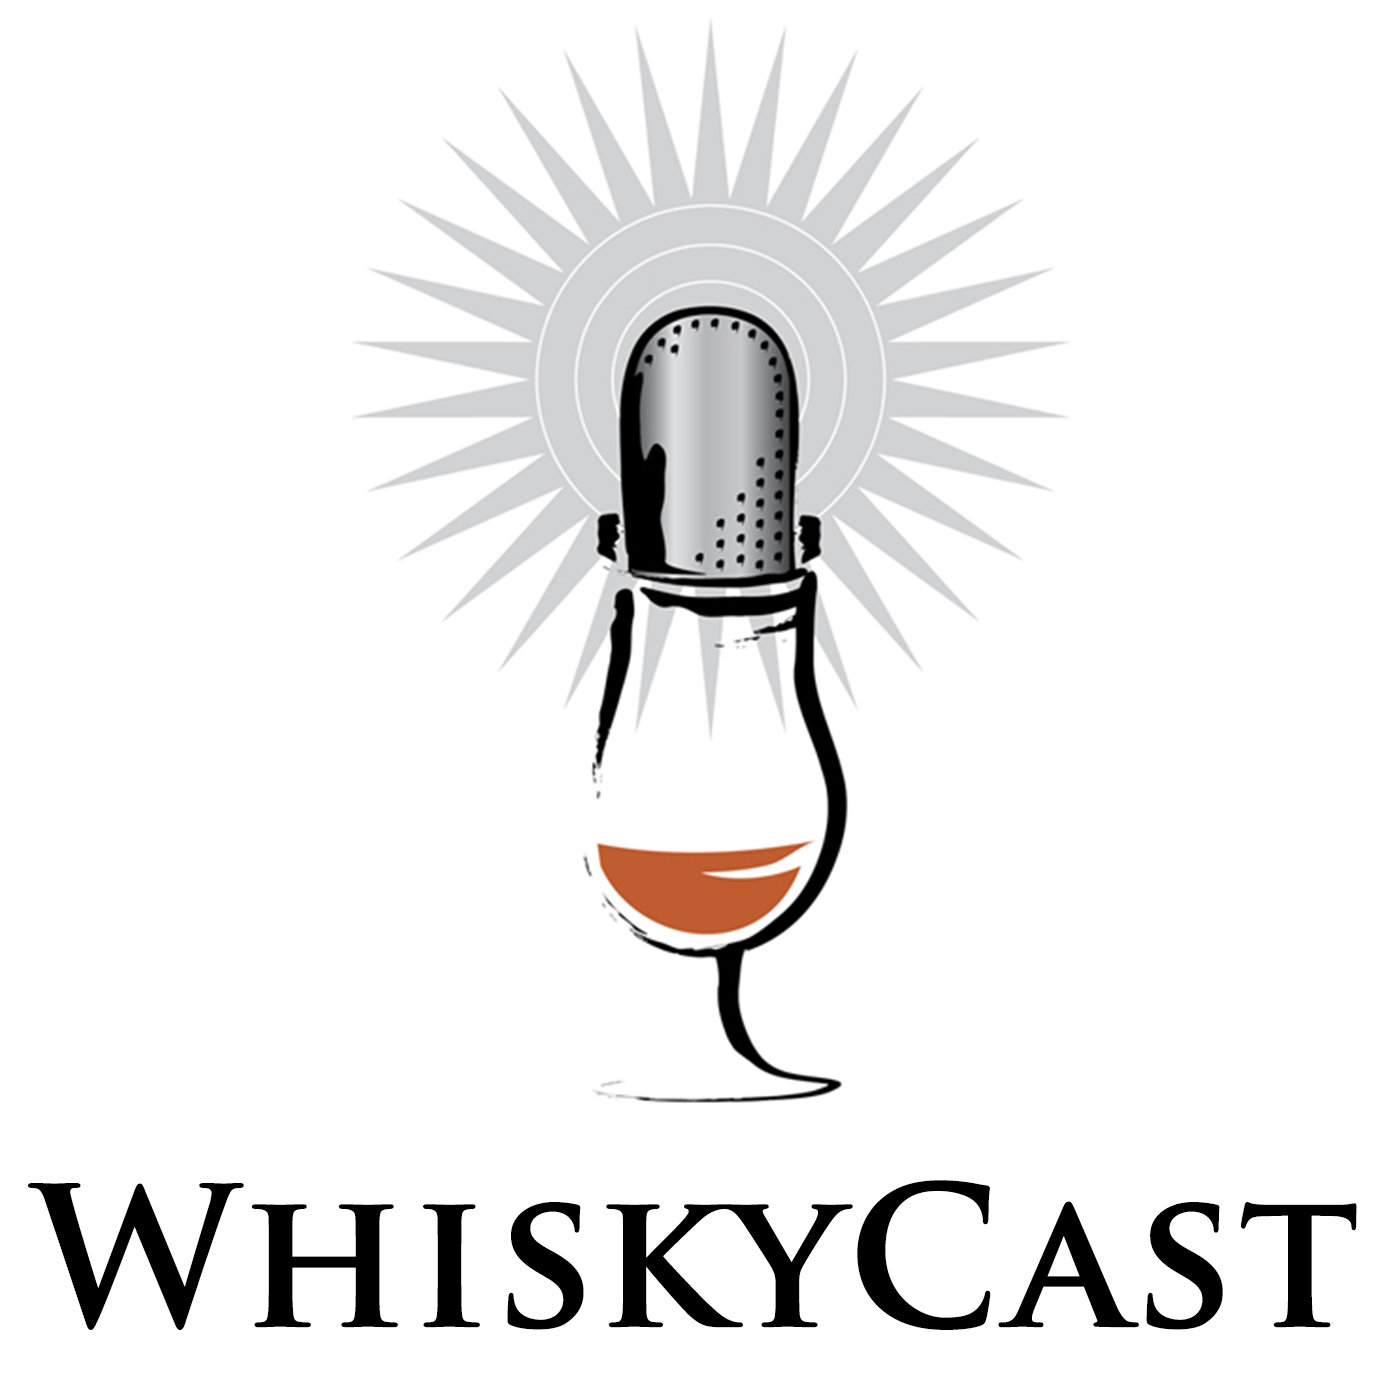 WhiskyCast Episode 432: July 6, 2013